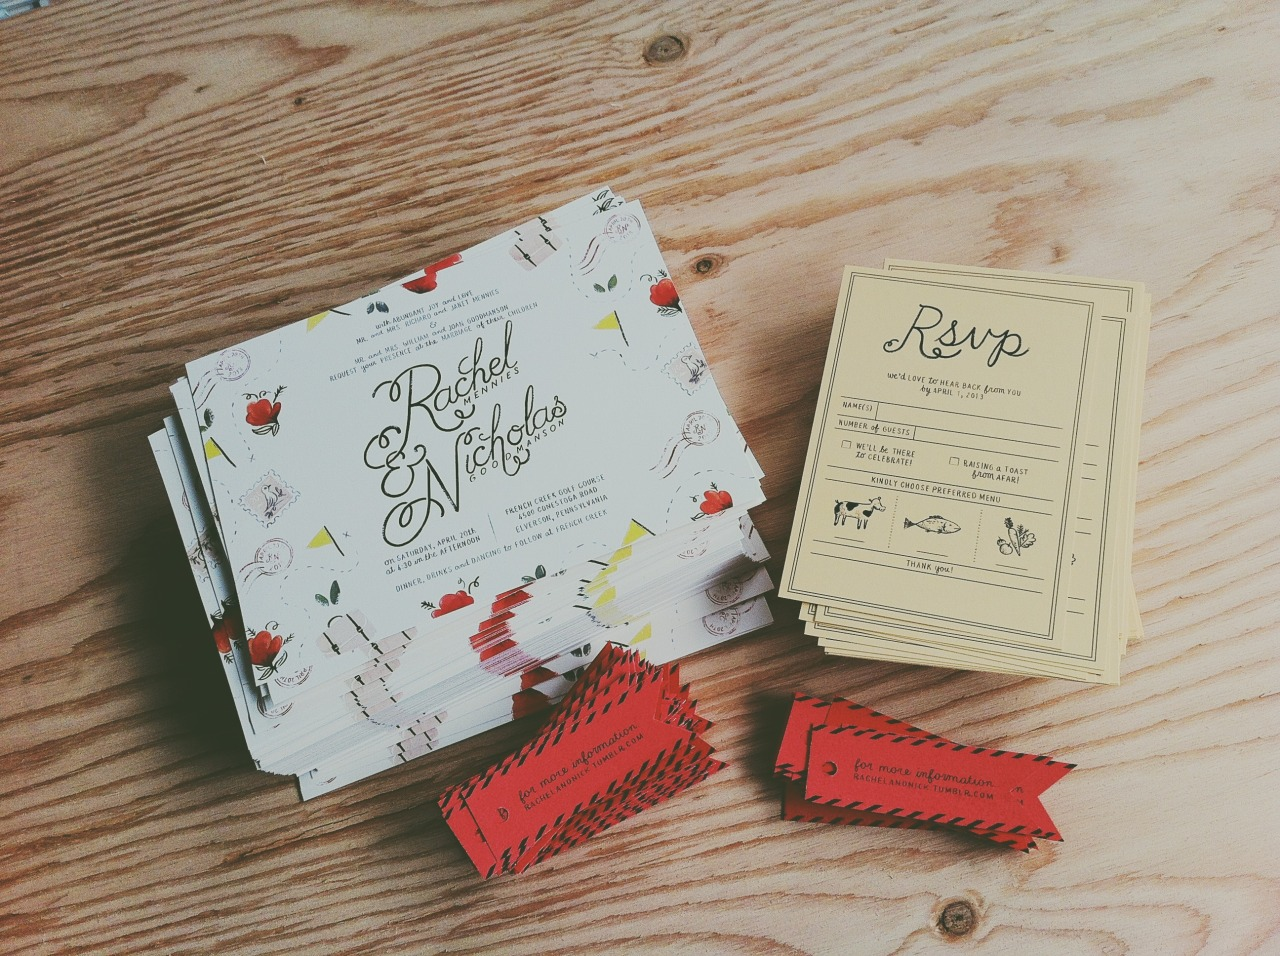 Rachel and Nick's Wedding Invitations One of my most favorite wedding set and bride to work with, hands down. Adding to our lookbook soon, I promise. I notice it's been awhile since we've updated!